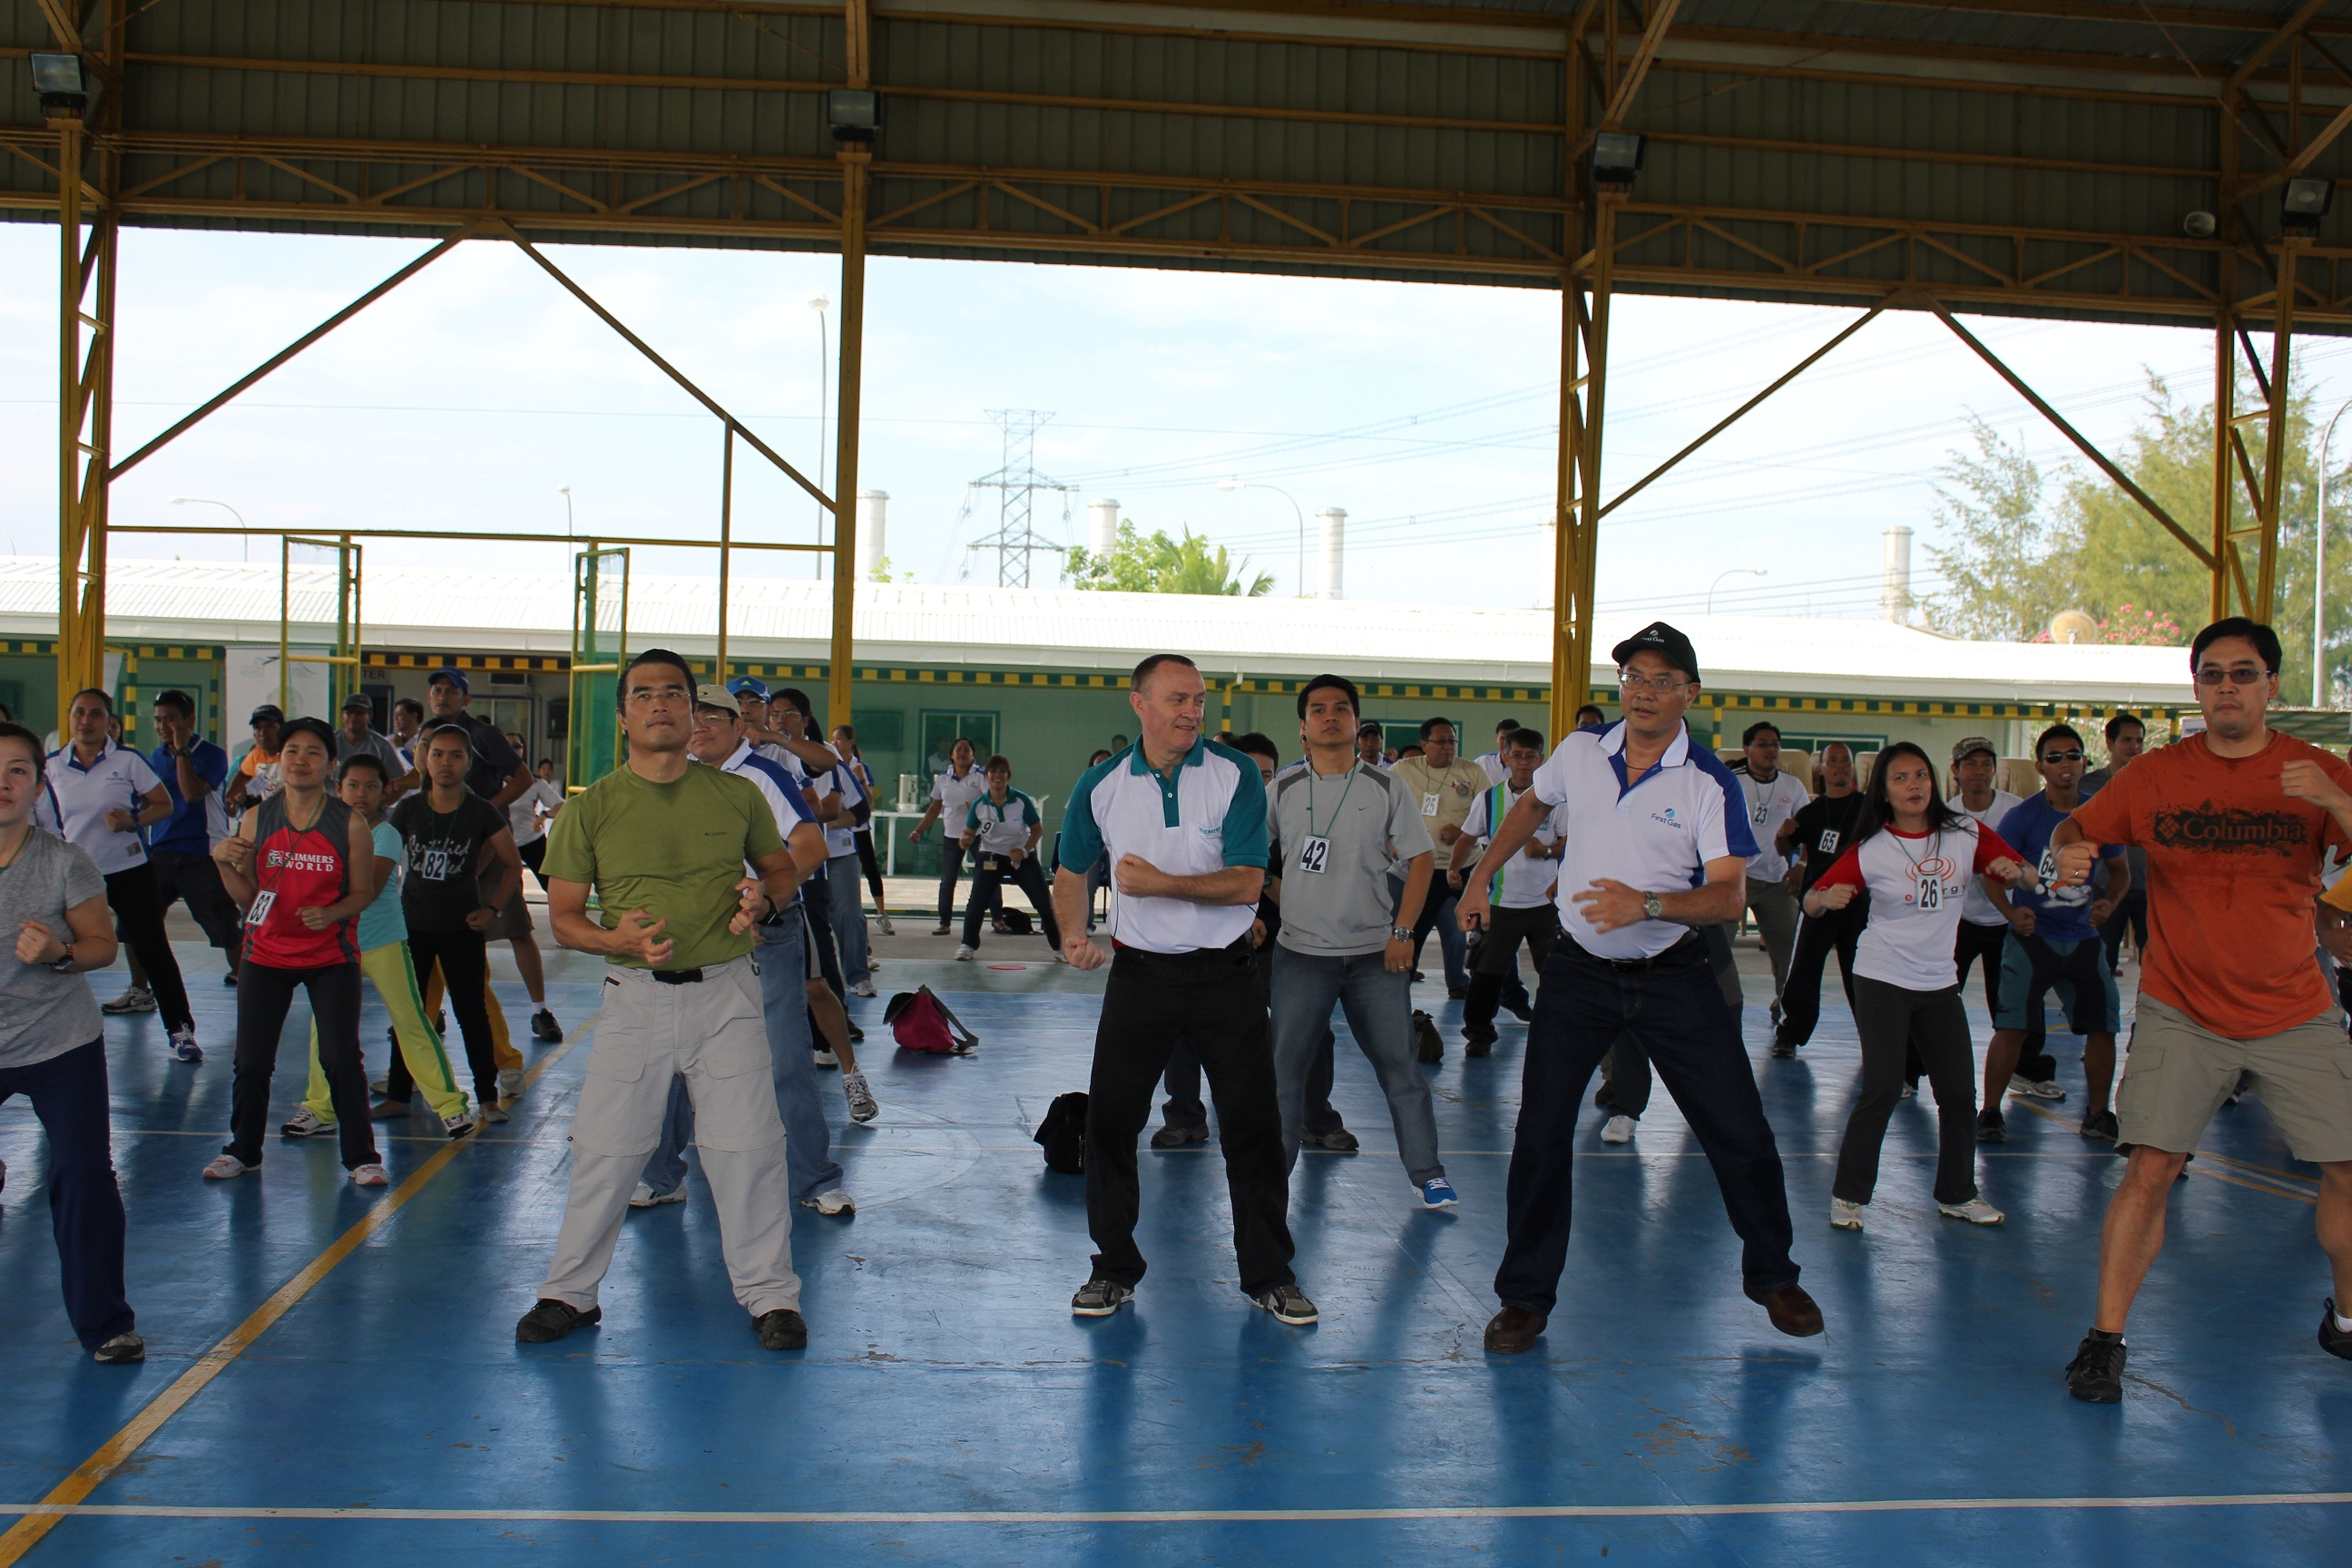 PH chairman Federico R. Lopez (right) and other Lopez Group executives limber up for the walk ahead